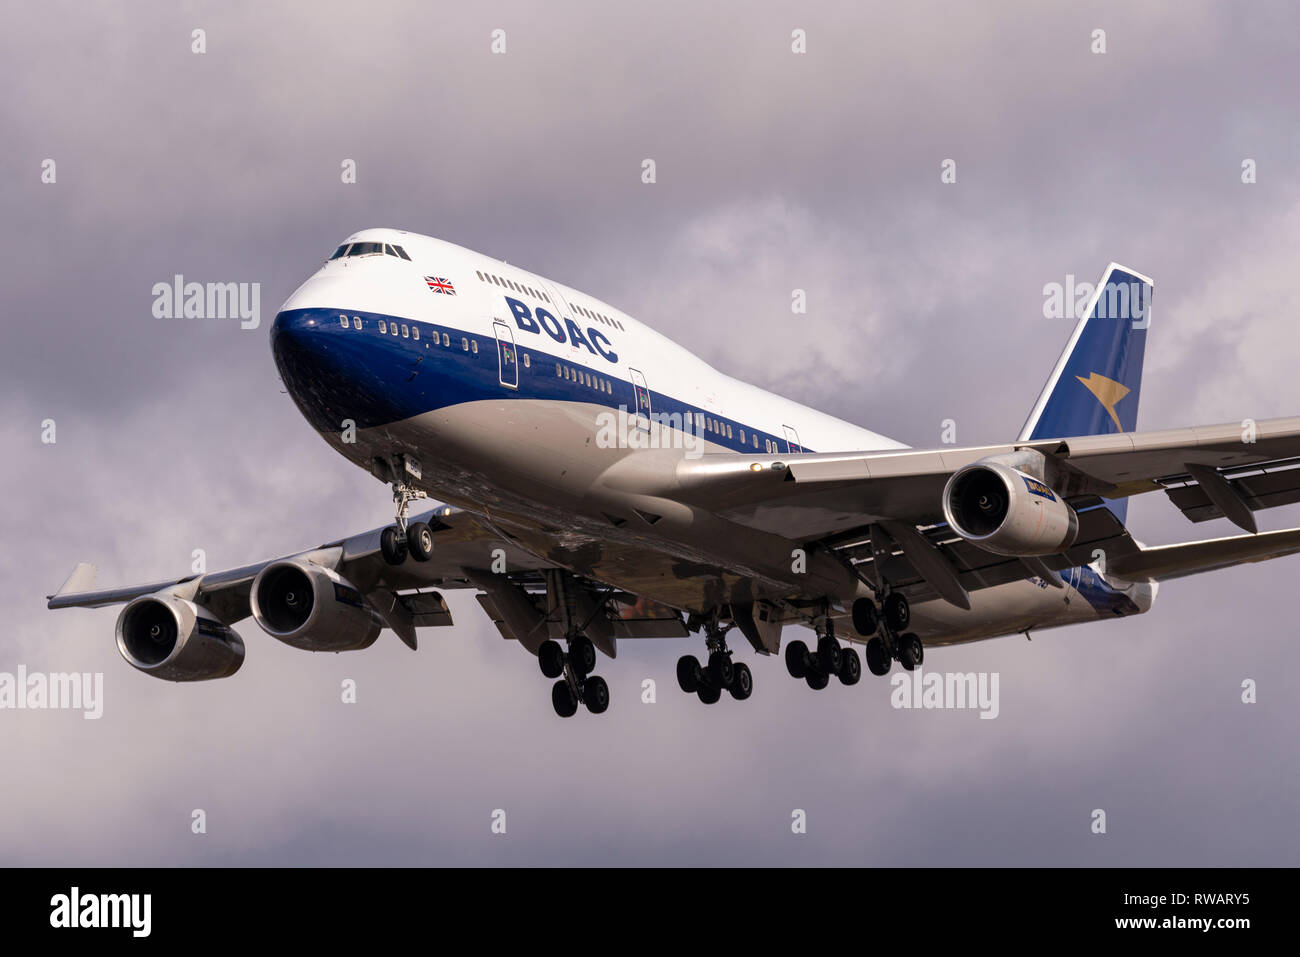 british-airways-boeing-747-jumbo-jet-g-bygc-landing-at-london-heathrow-in-stormy-weather-painted-in-retro-boac-colours-for-centenary-of-ba-RWARY5.jpg